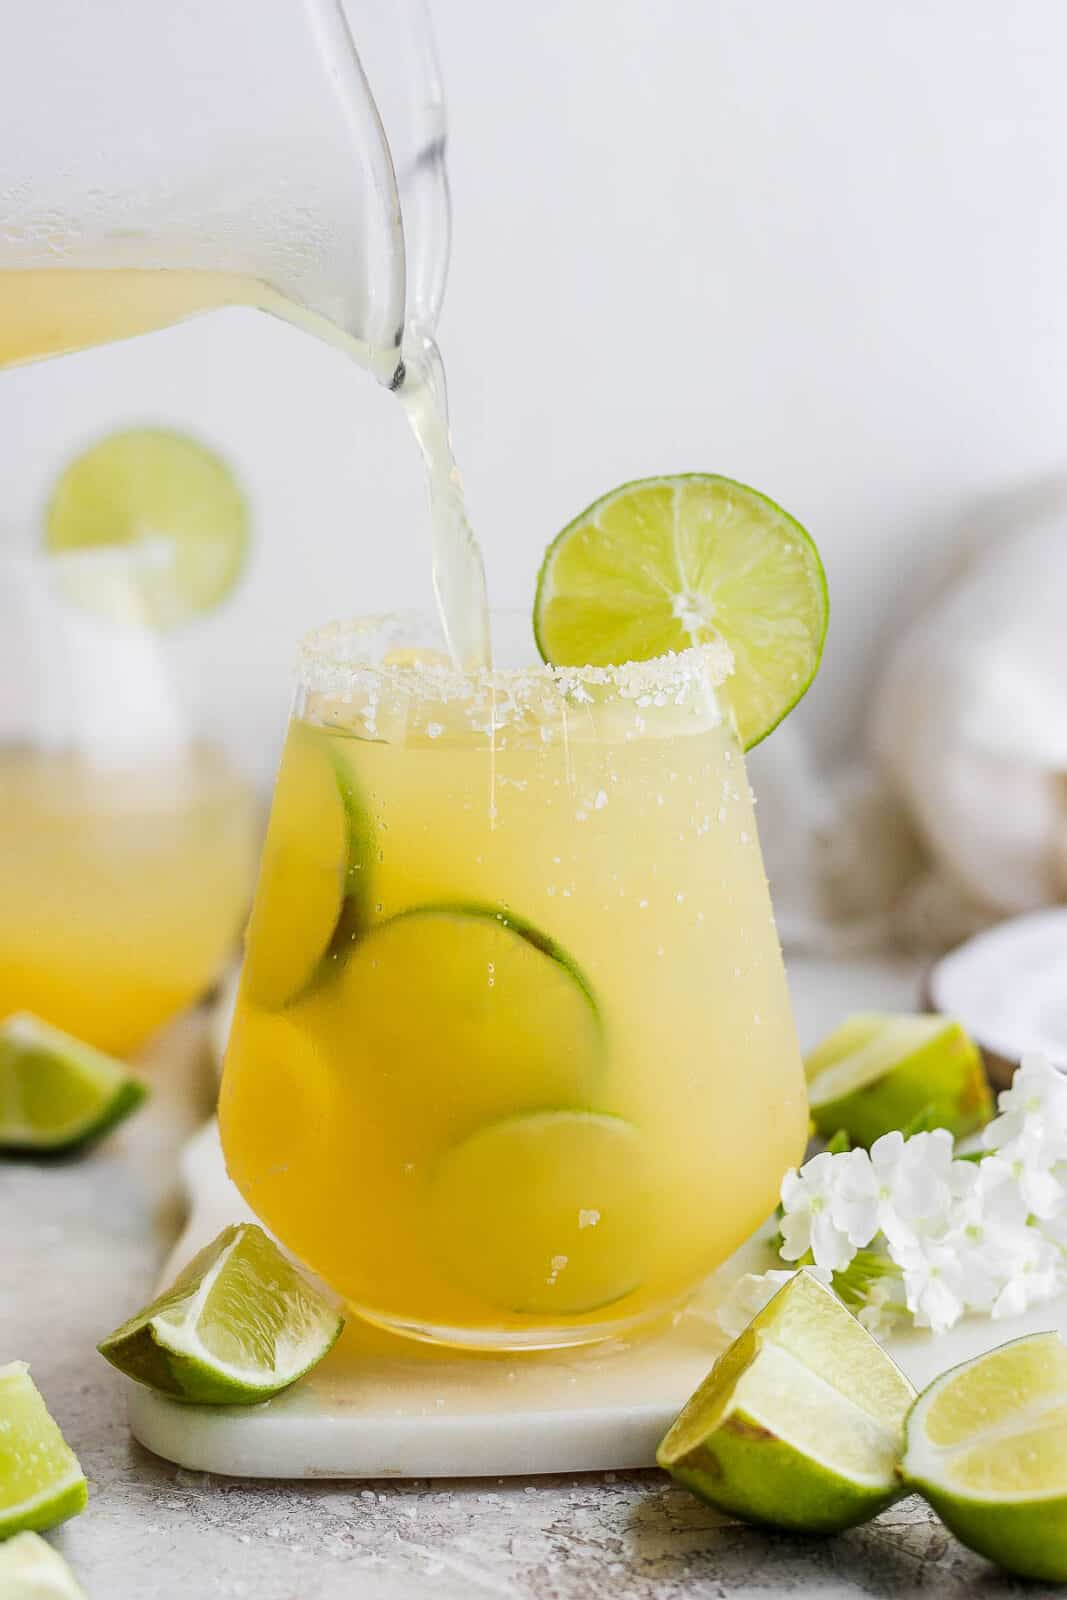 Someone pouring margarita into a salt-rimmed glass.